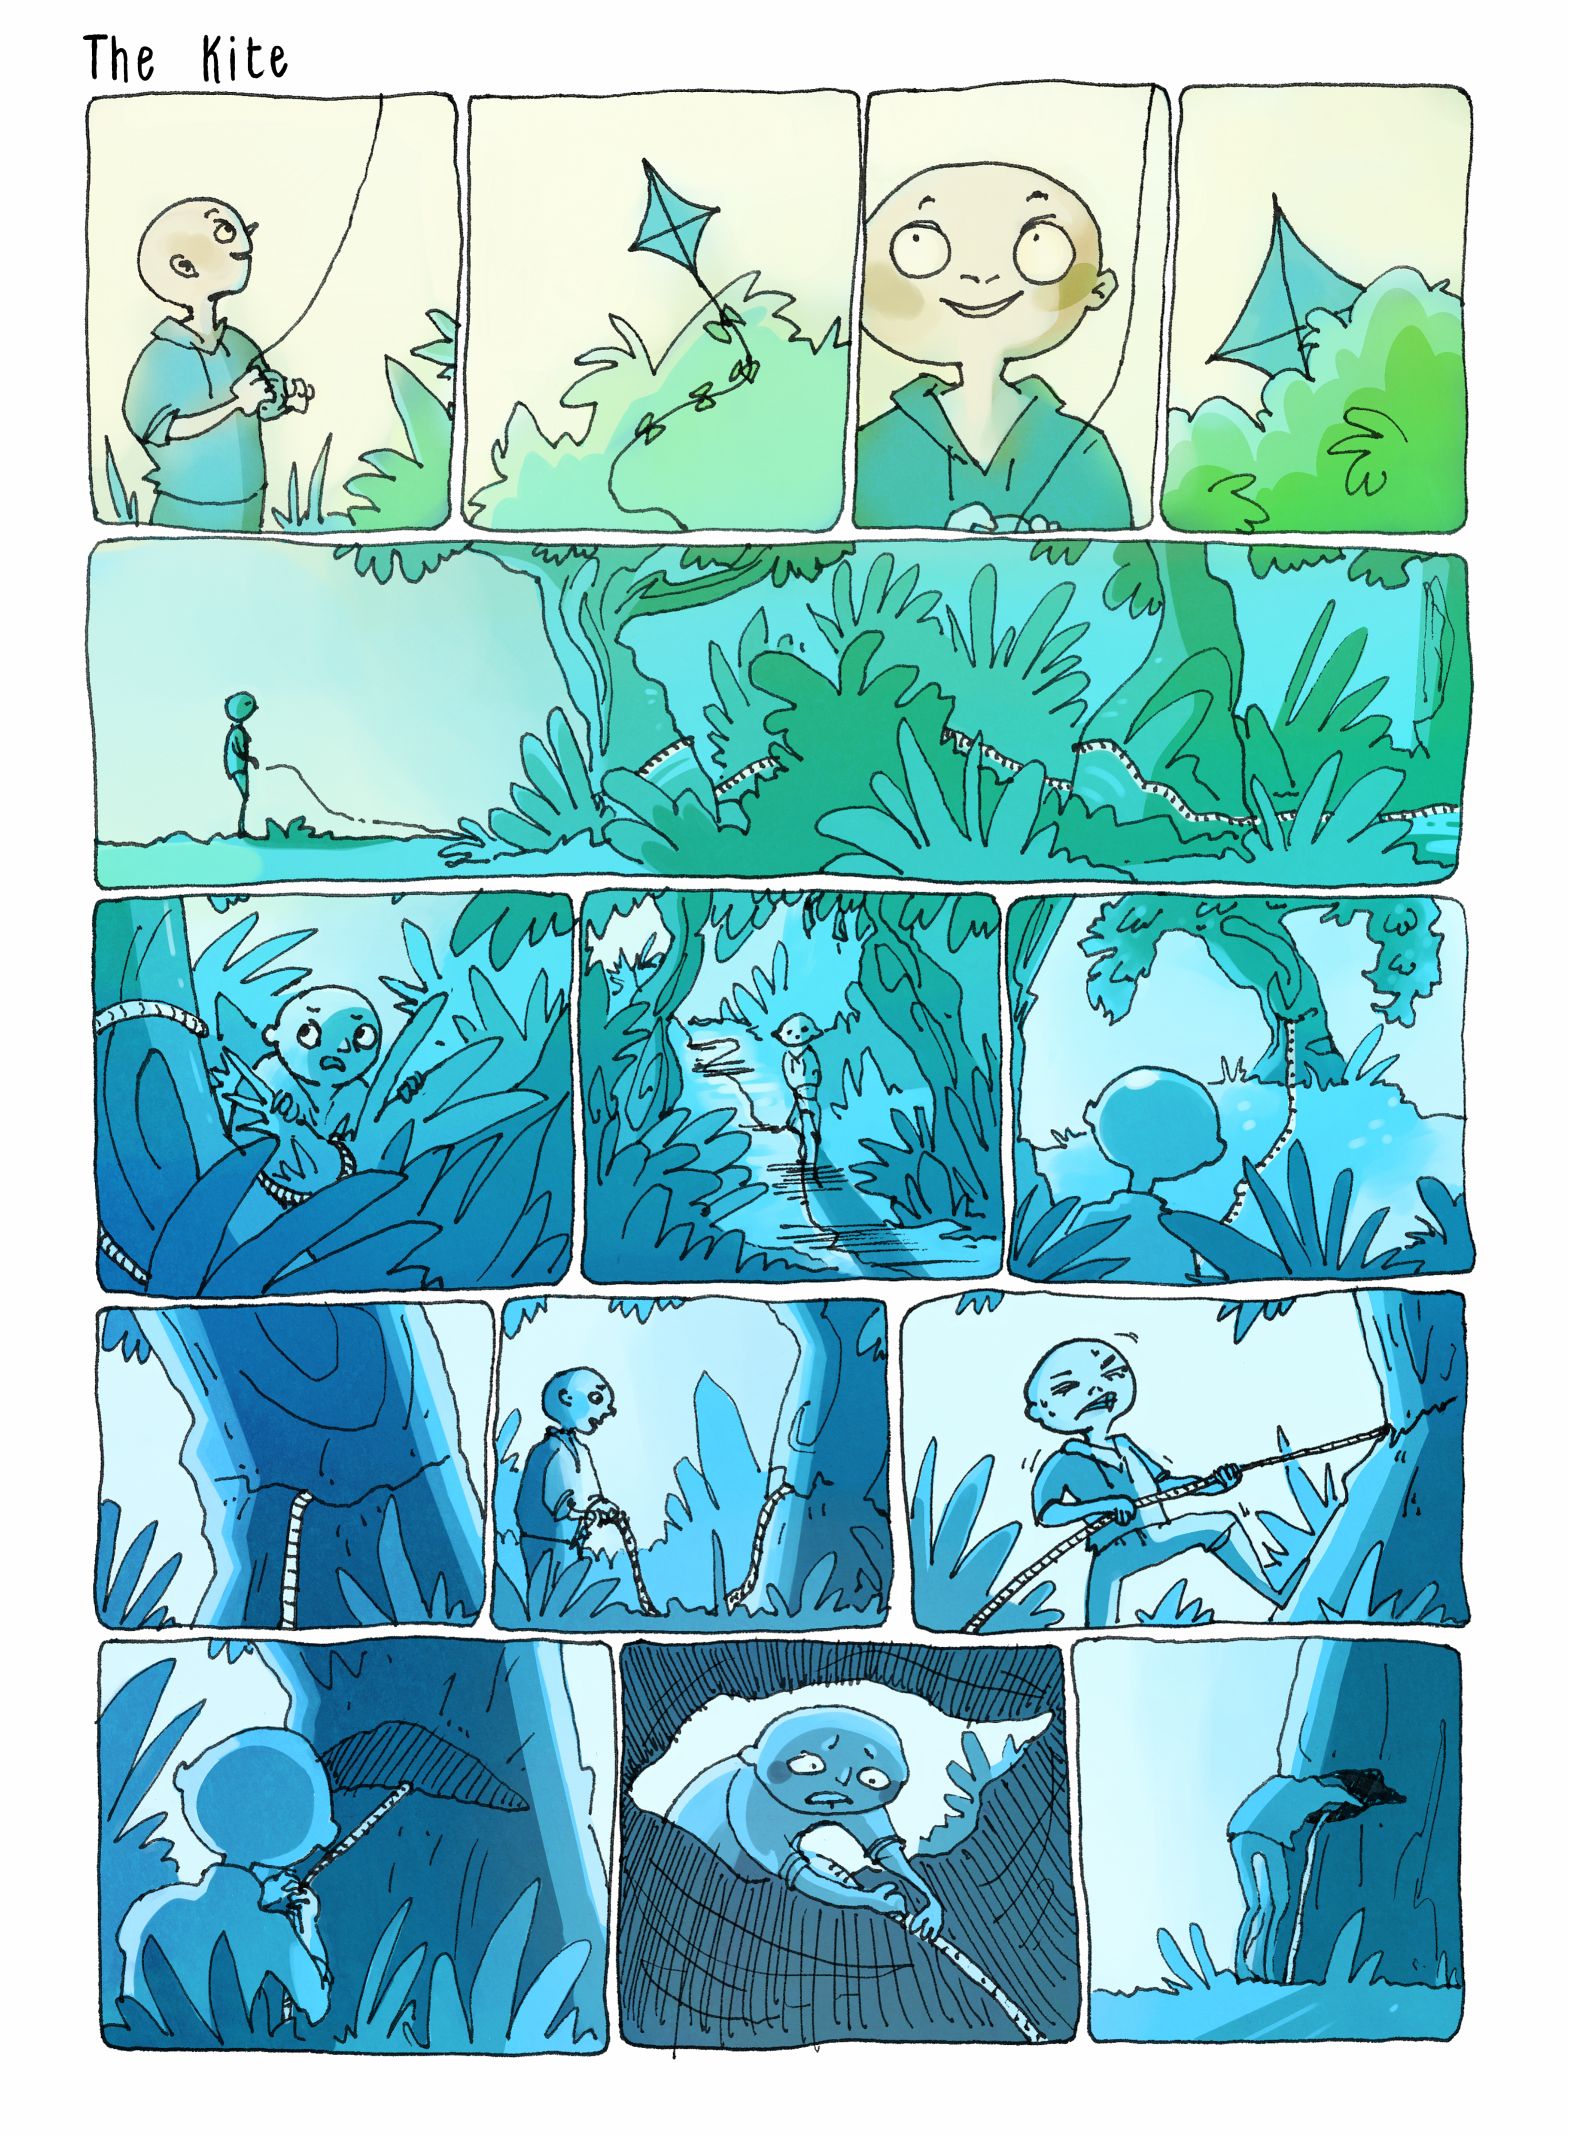 01_benelux strip 1.png